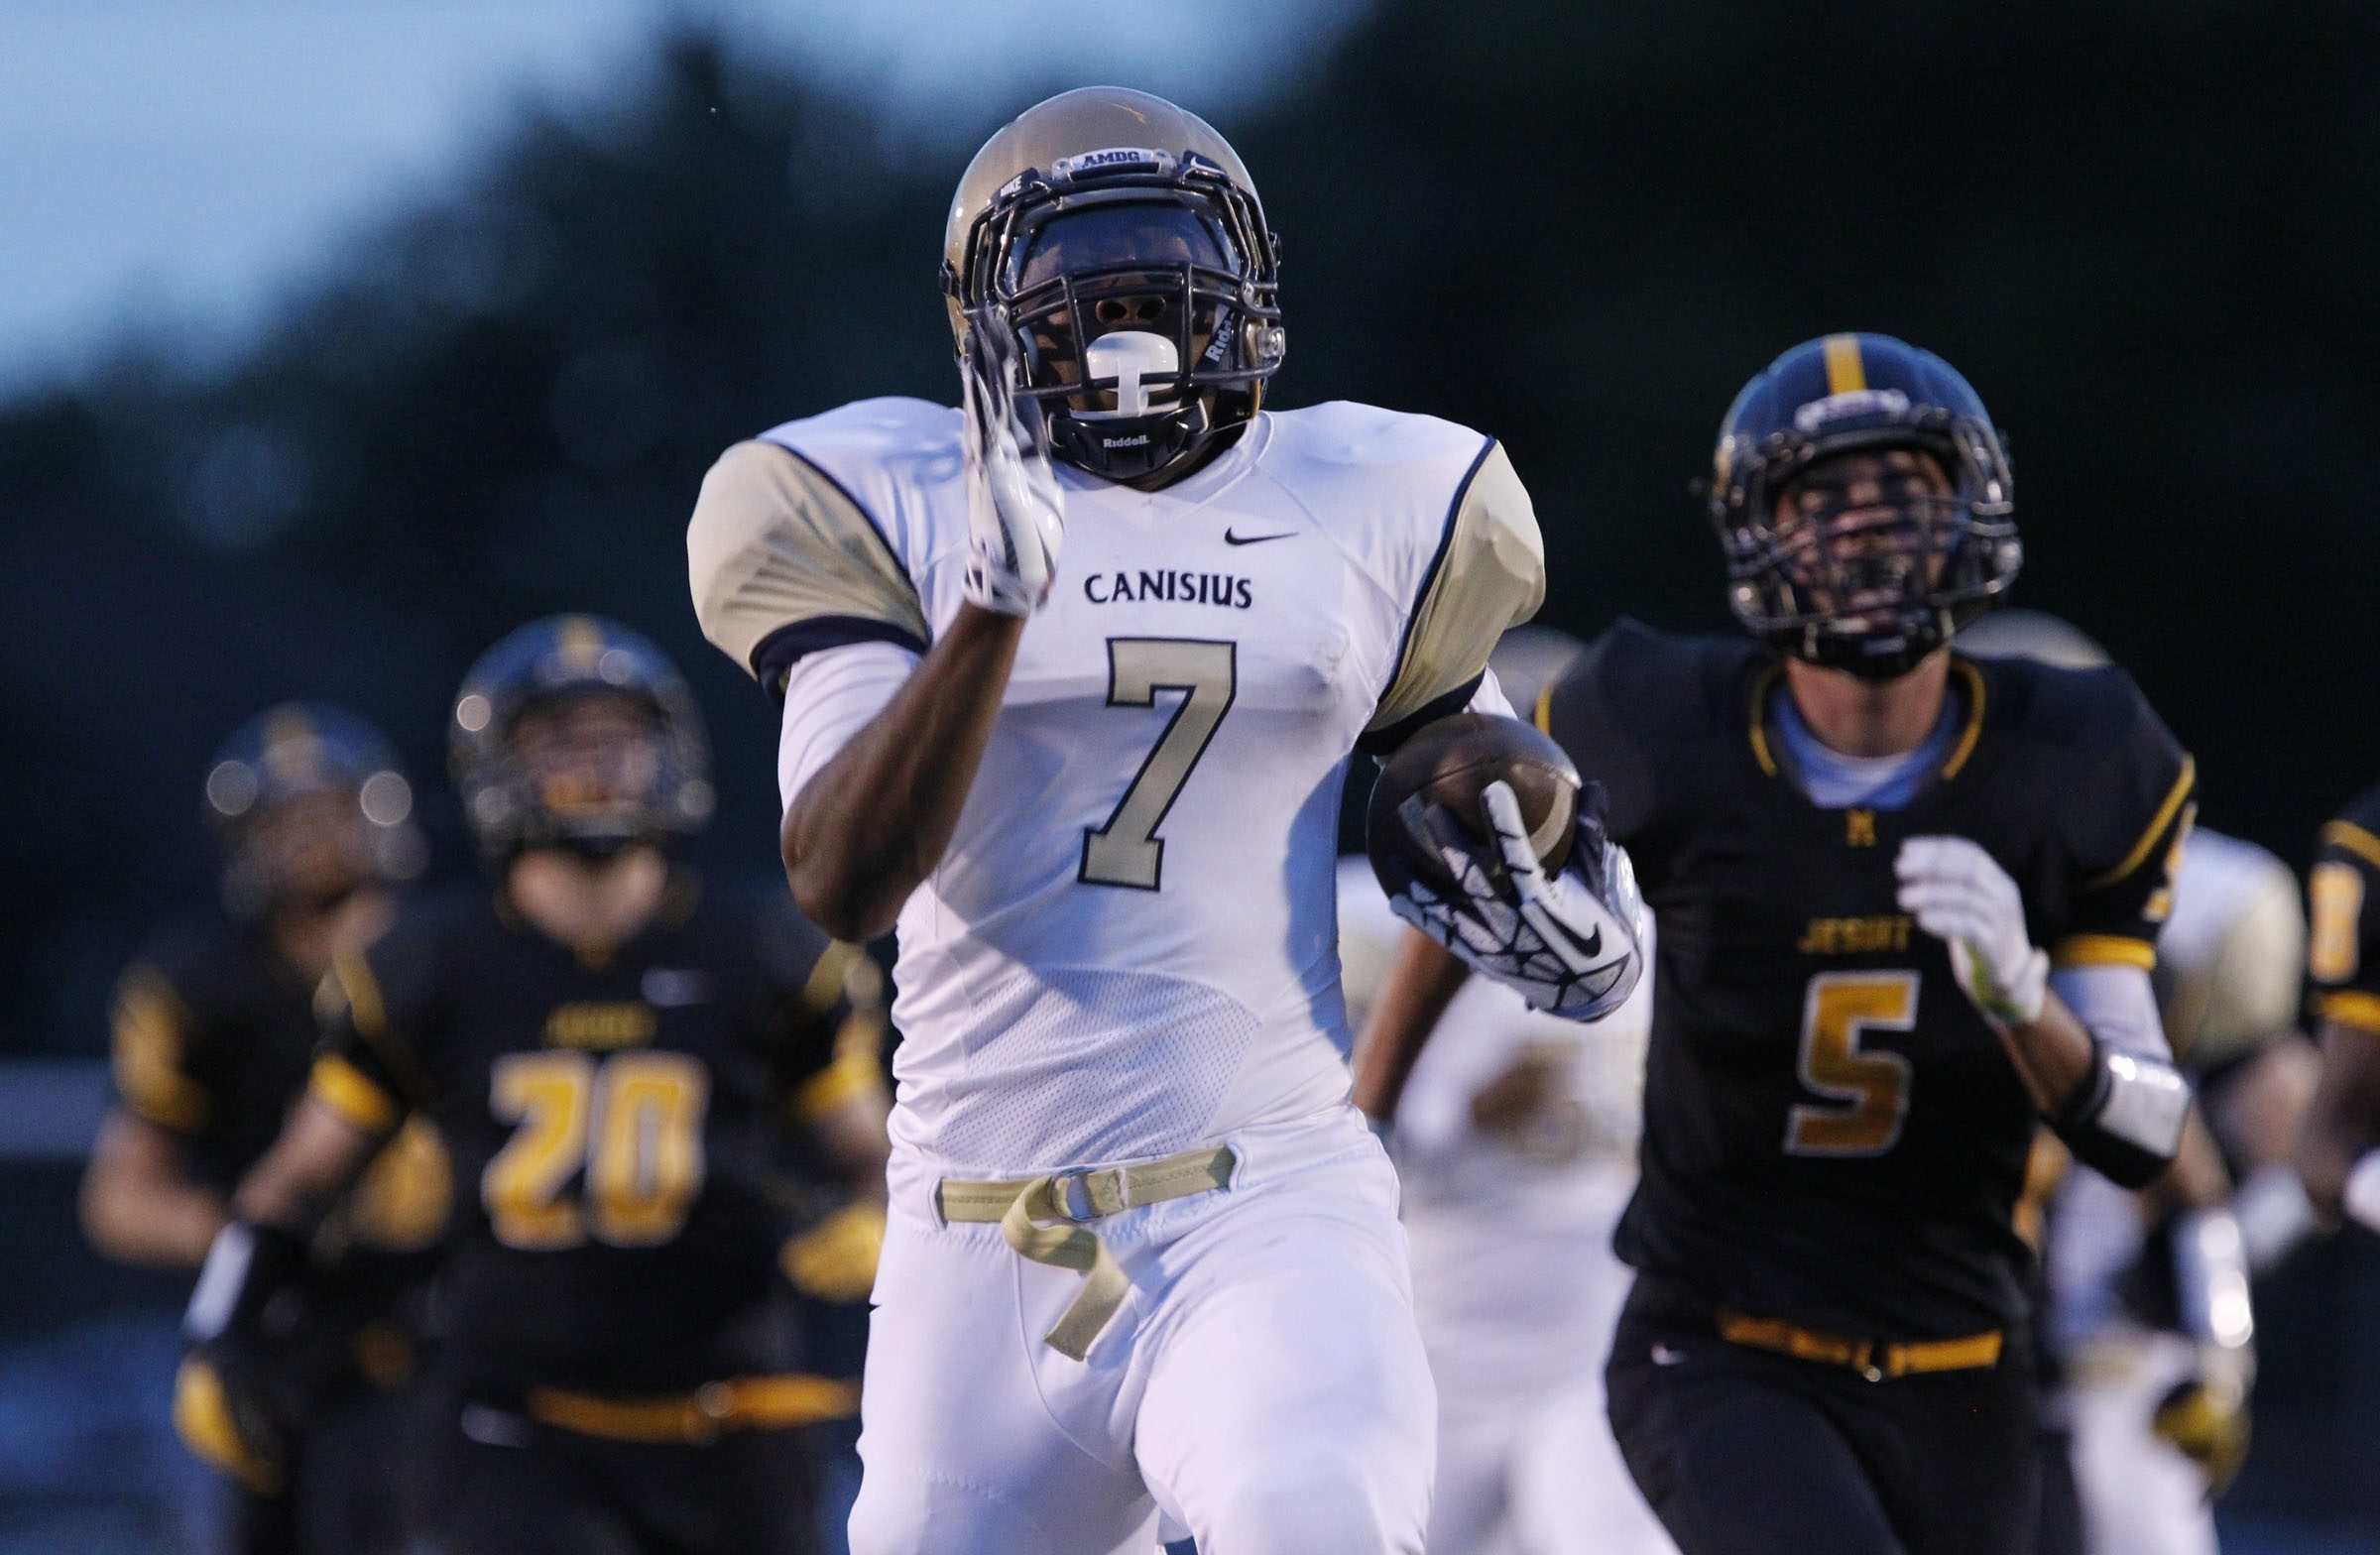 Canisius running back Qadree Ollison heads to the end zone on a 65-yard run against McQuaid. More high school football coverage on pages B6 and B7.